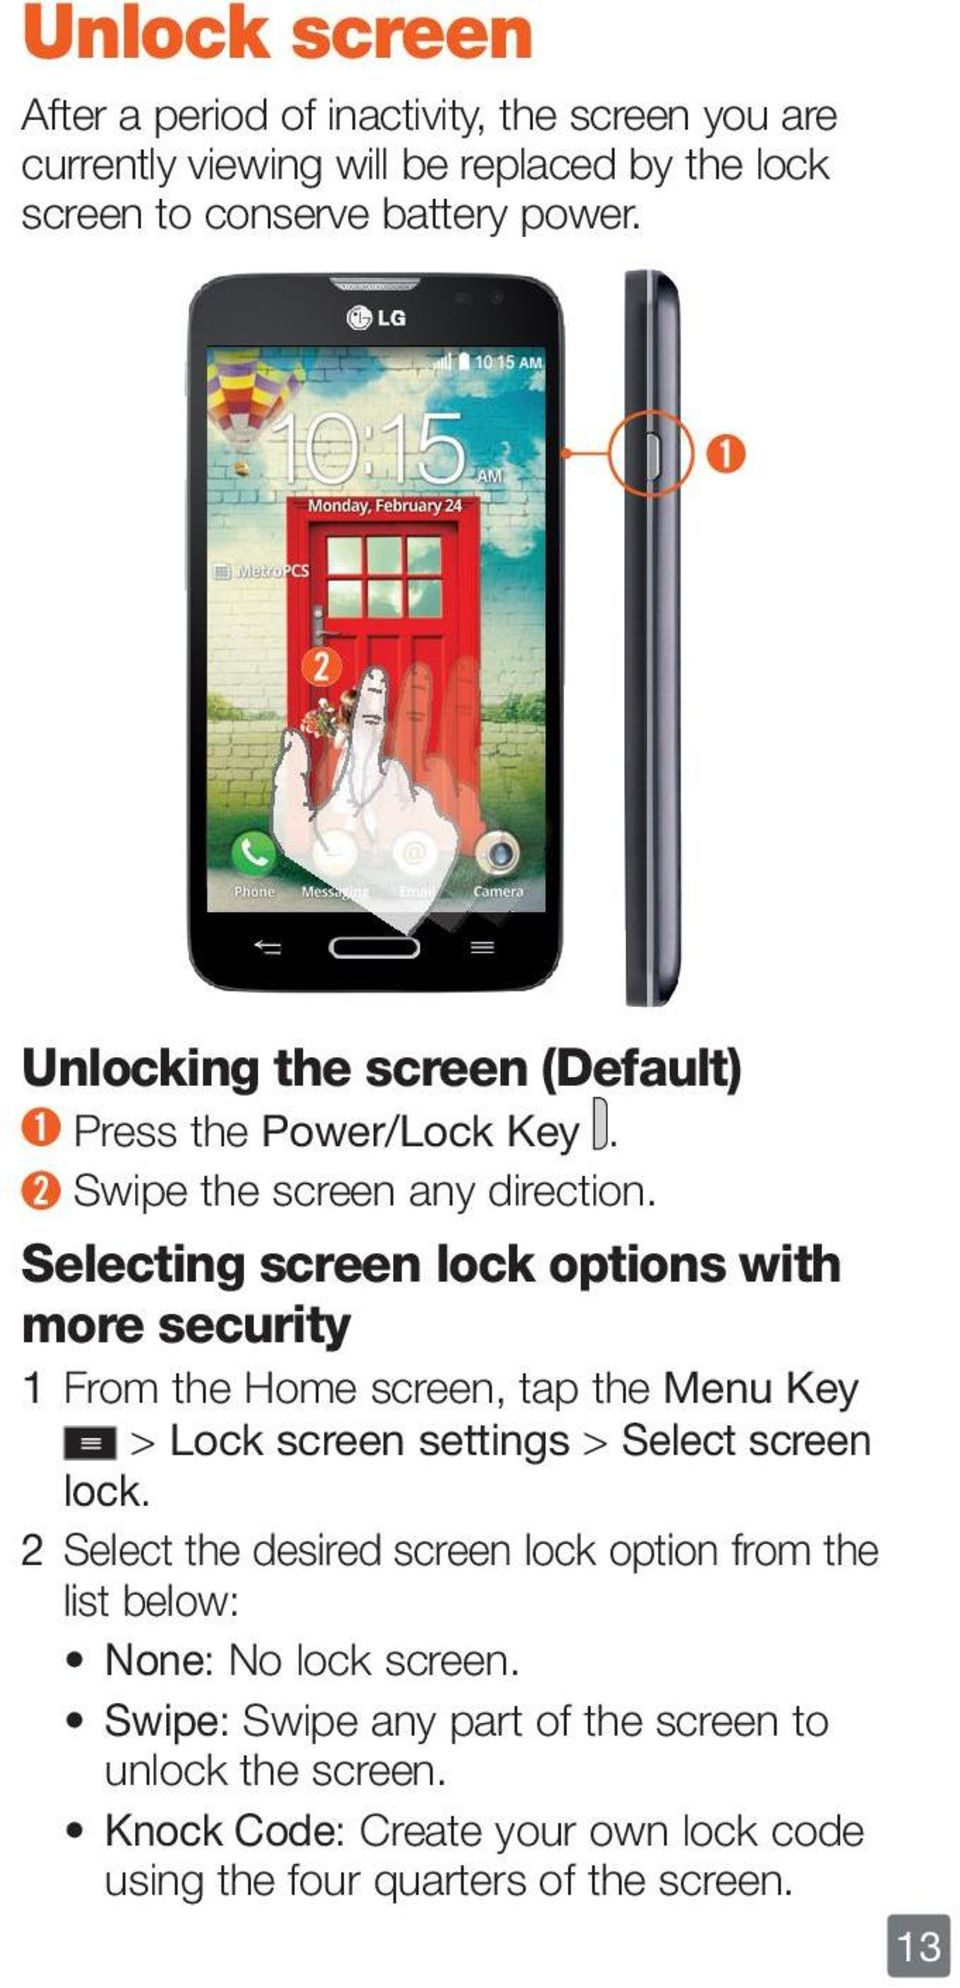 Selecting screen lock options with more security 1 From the Home screen, tap the Menu Key > Lock screen settings > Select screen lock.